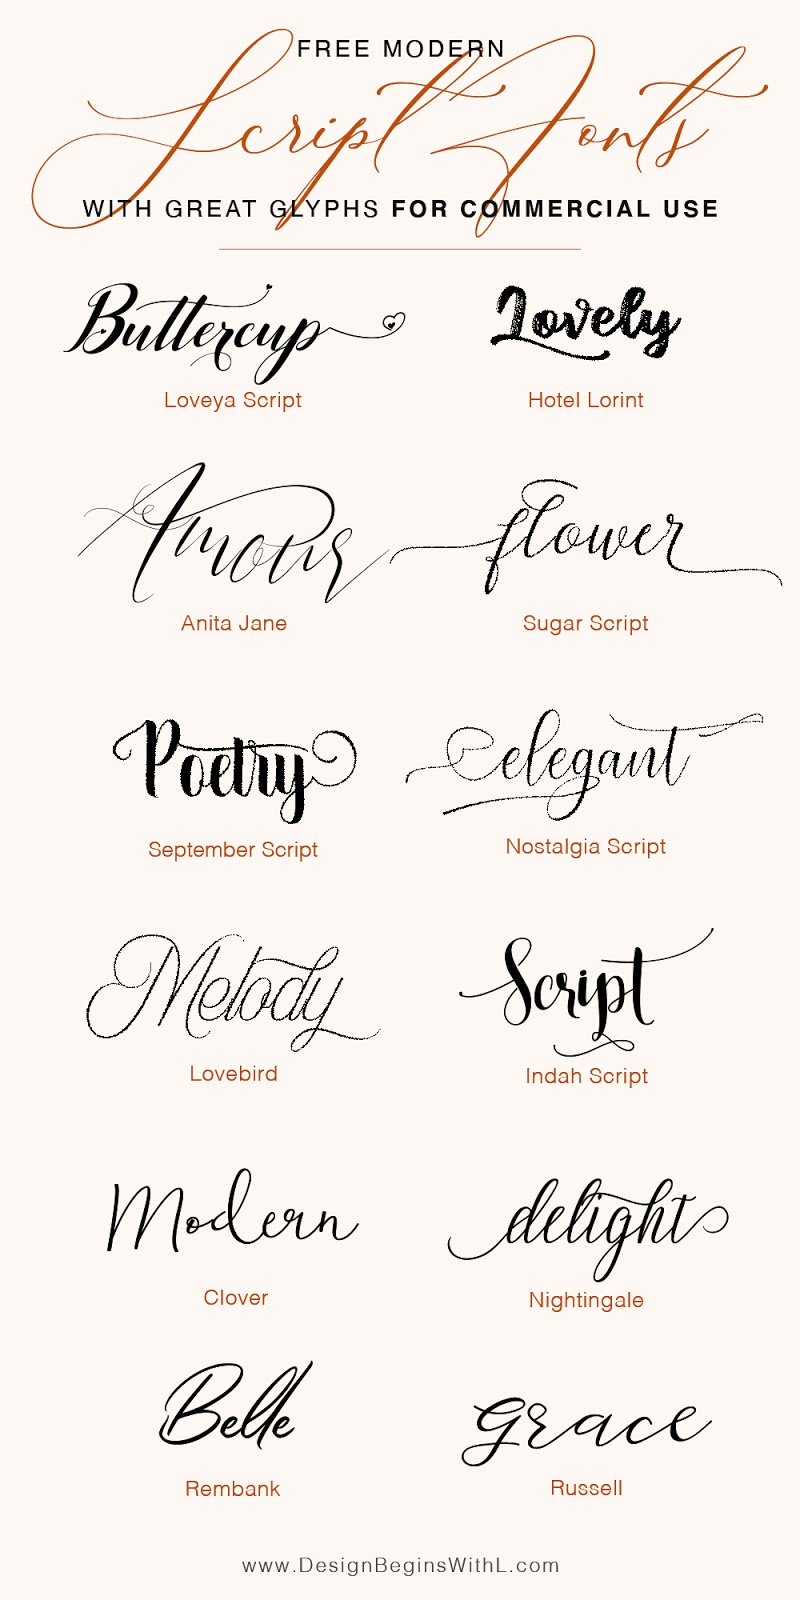 Free Script Fonts for Commercial Use